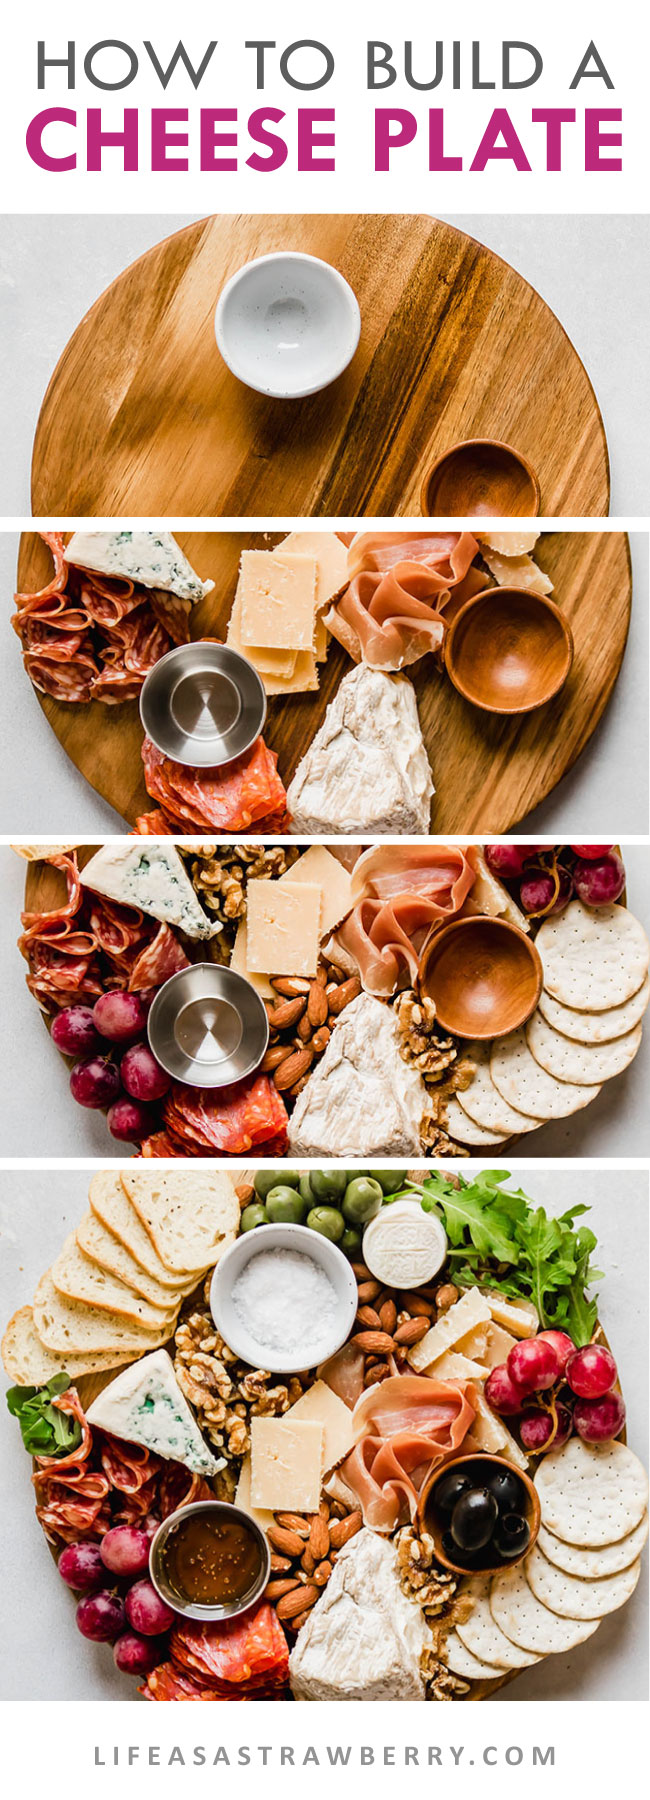 photo collage of step-by-step cheese plate making